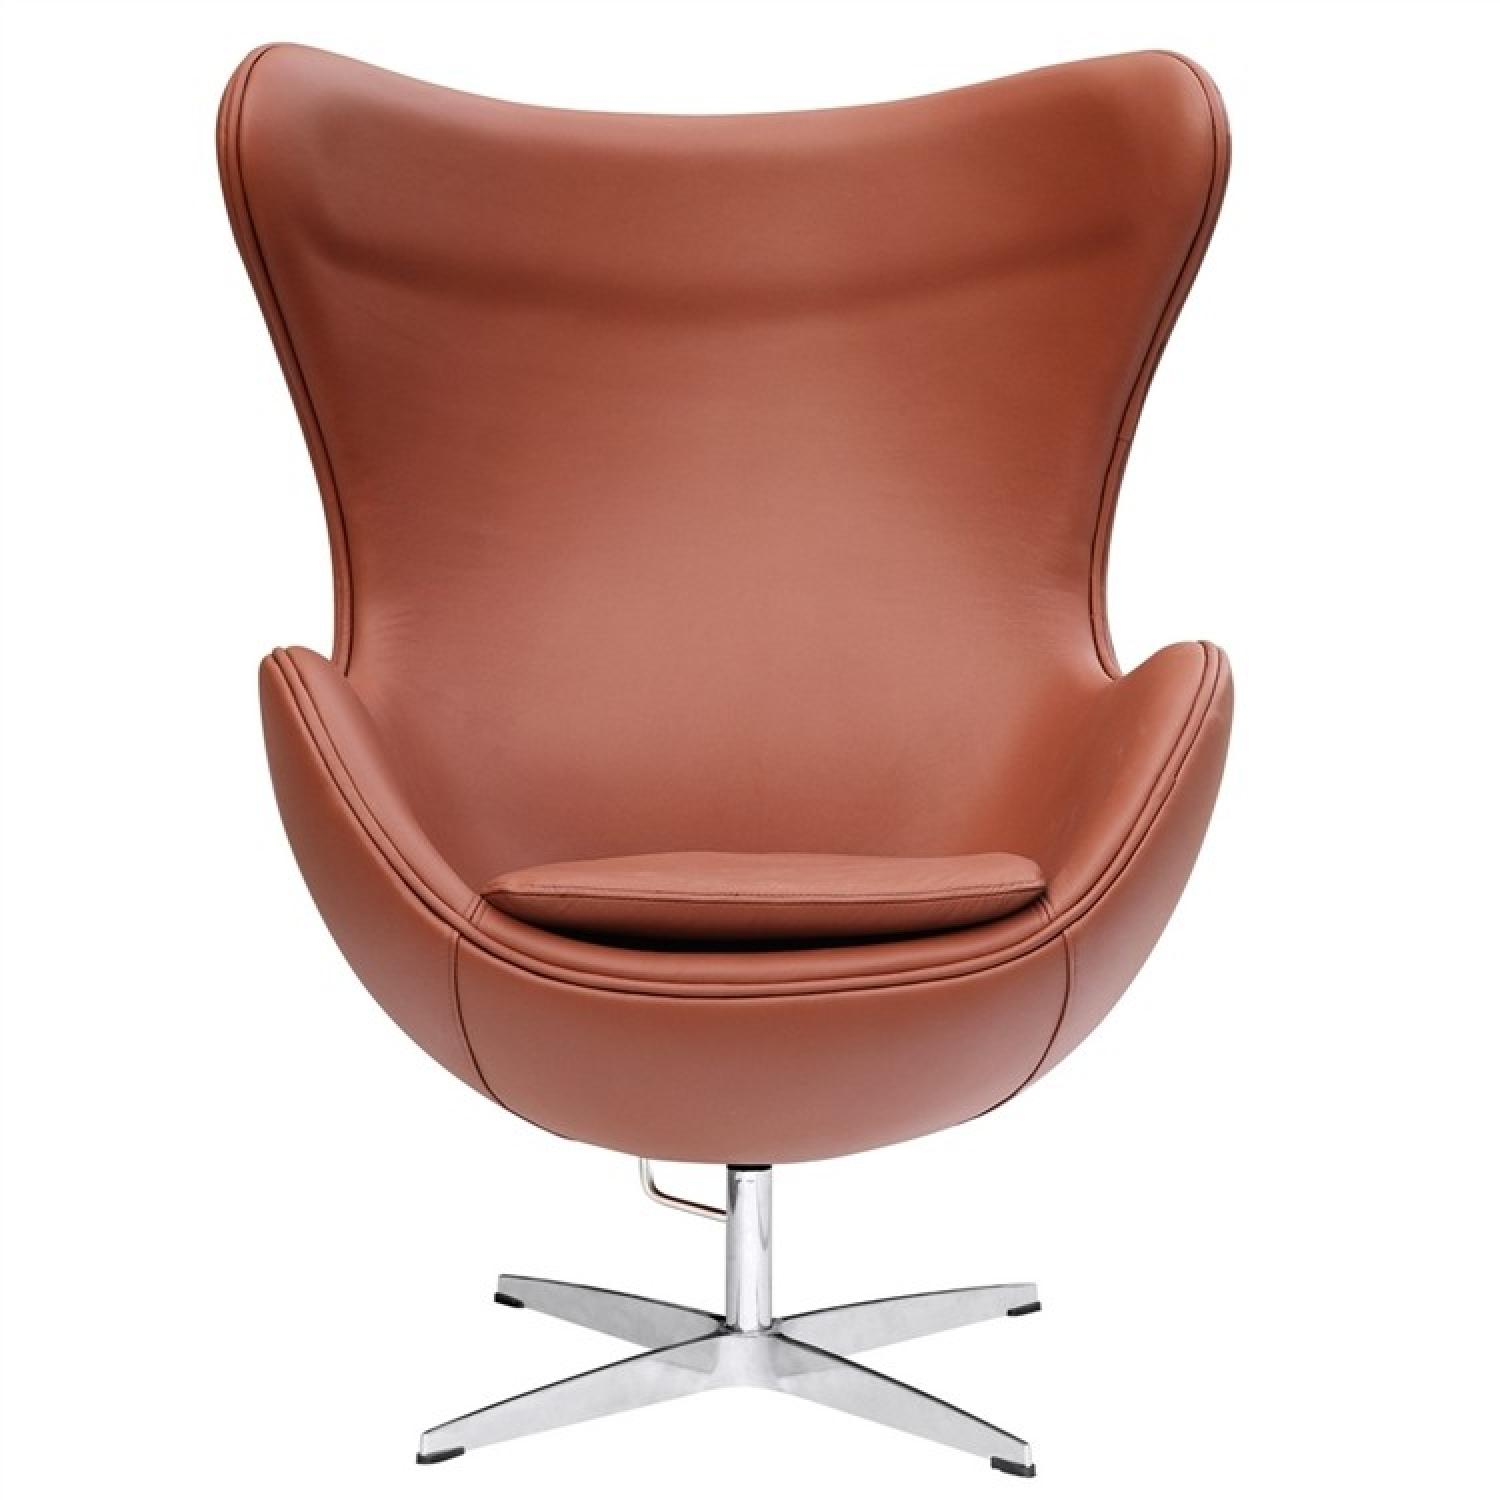 Mid-Century Style Egg Chair in Premium Light Brown Leather - image-2